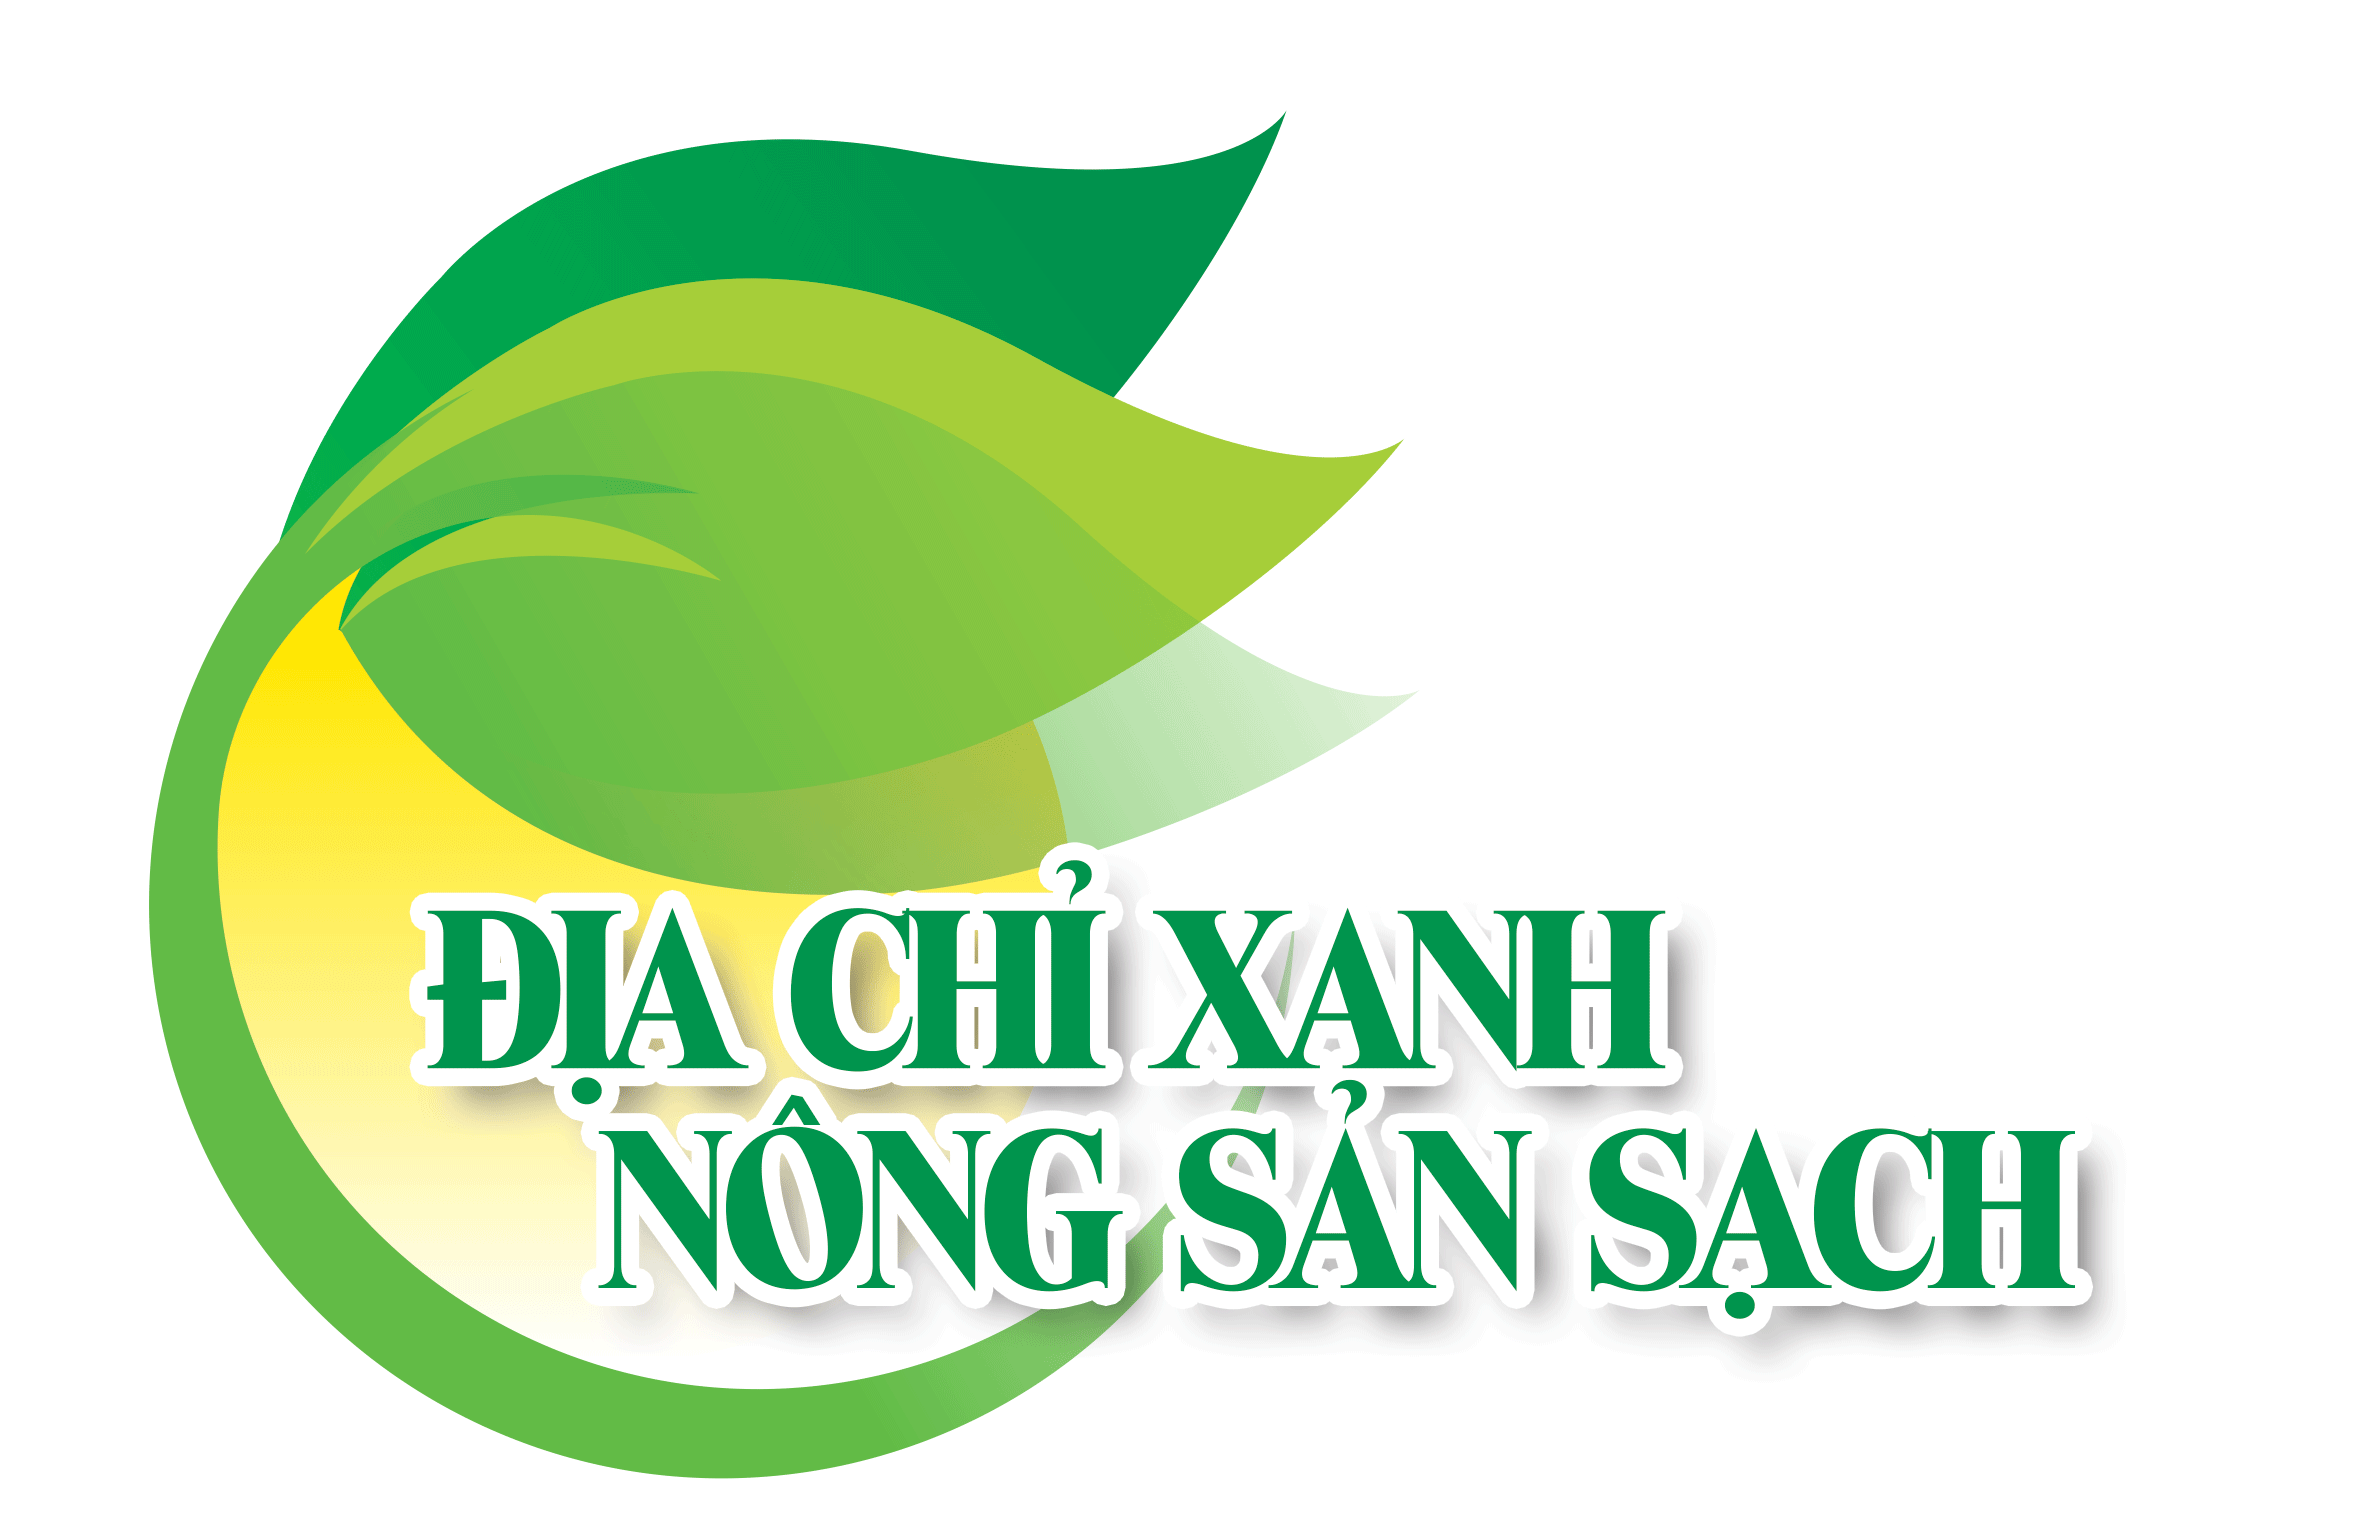 6 meo ra dong thuc pham dung cach, an toan hinh anh 1